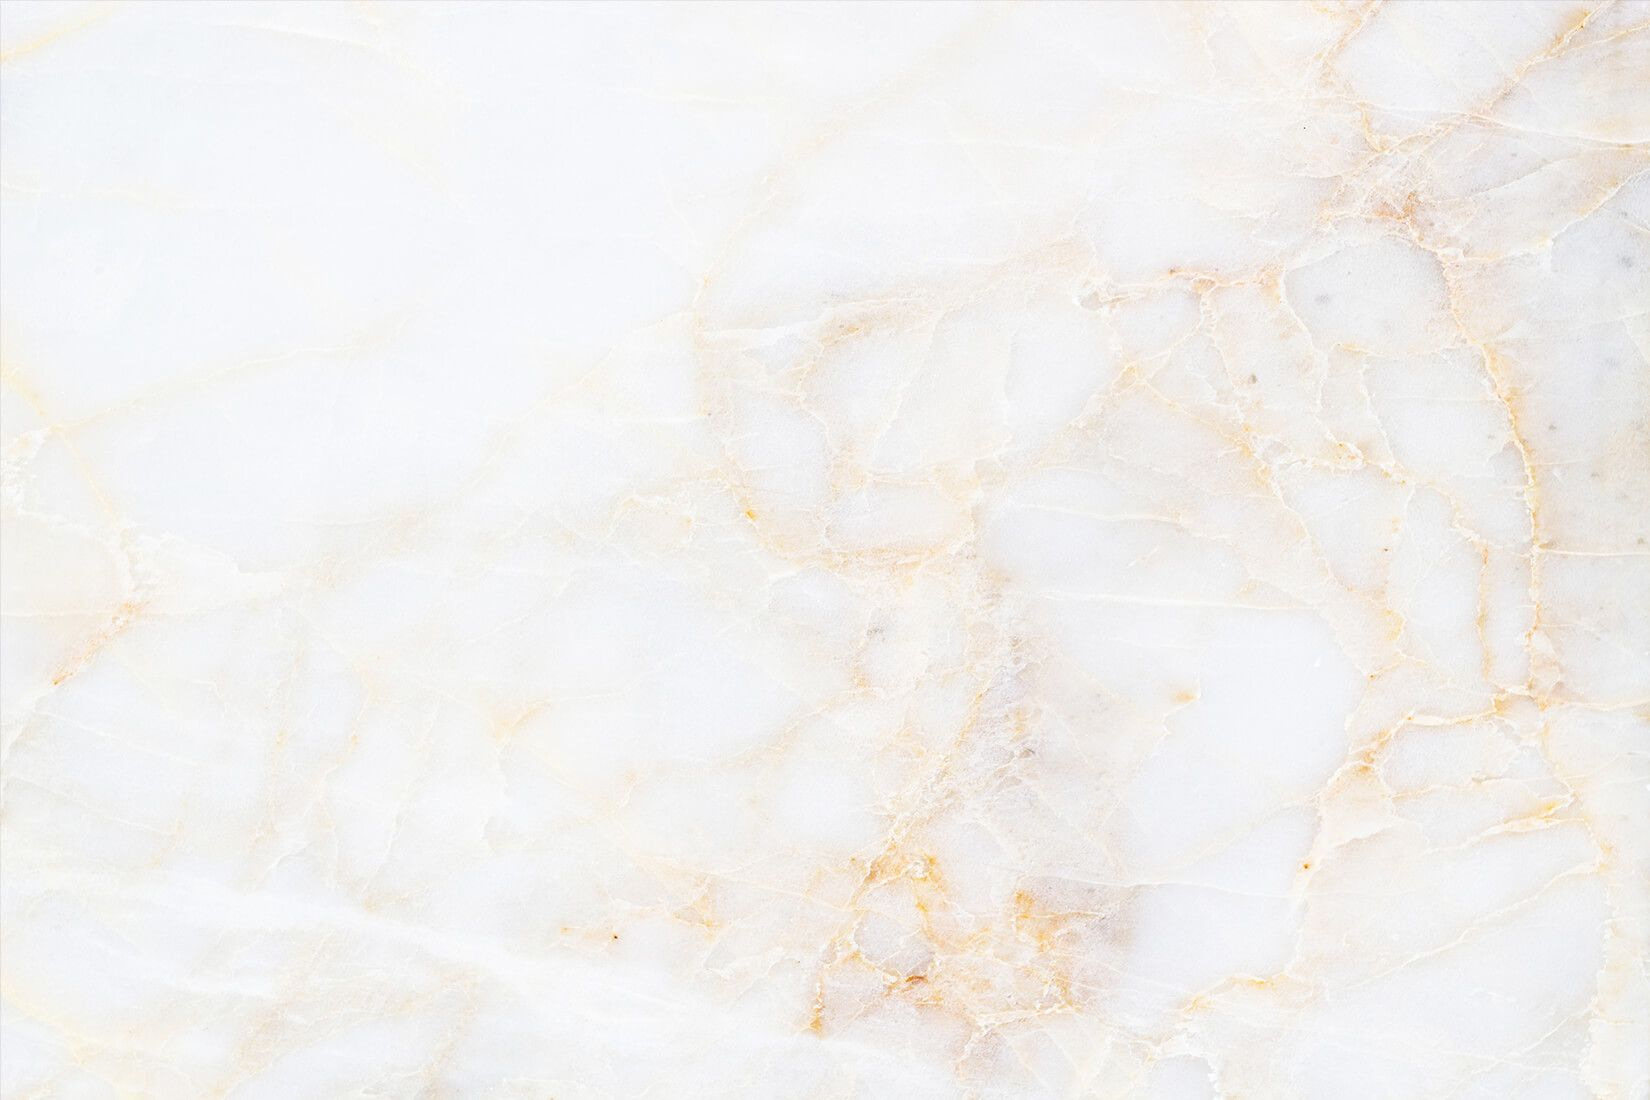 White And Gold Marble Wallpaper Muralswallpaper Gold Marble Wallpaper Rose Gold Marble Wallpaper Gold Marble